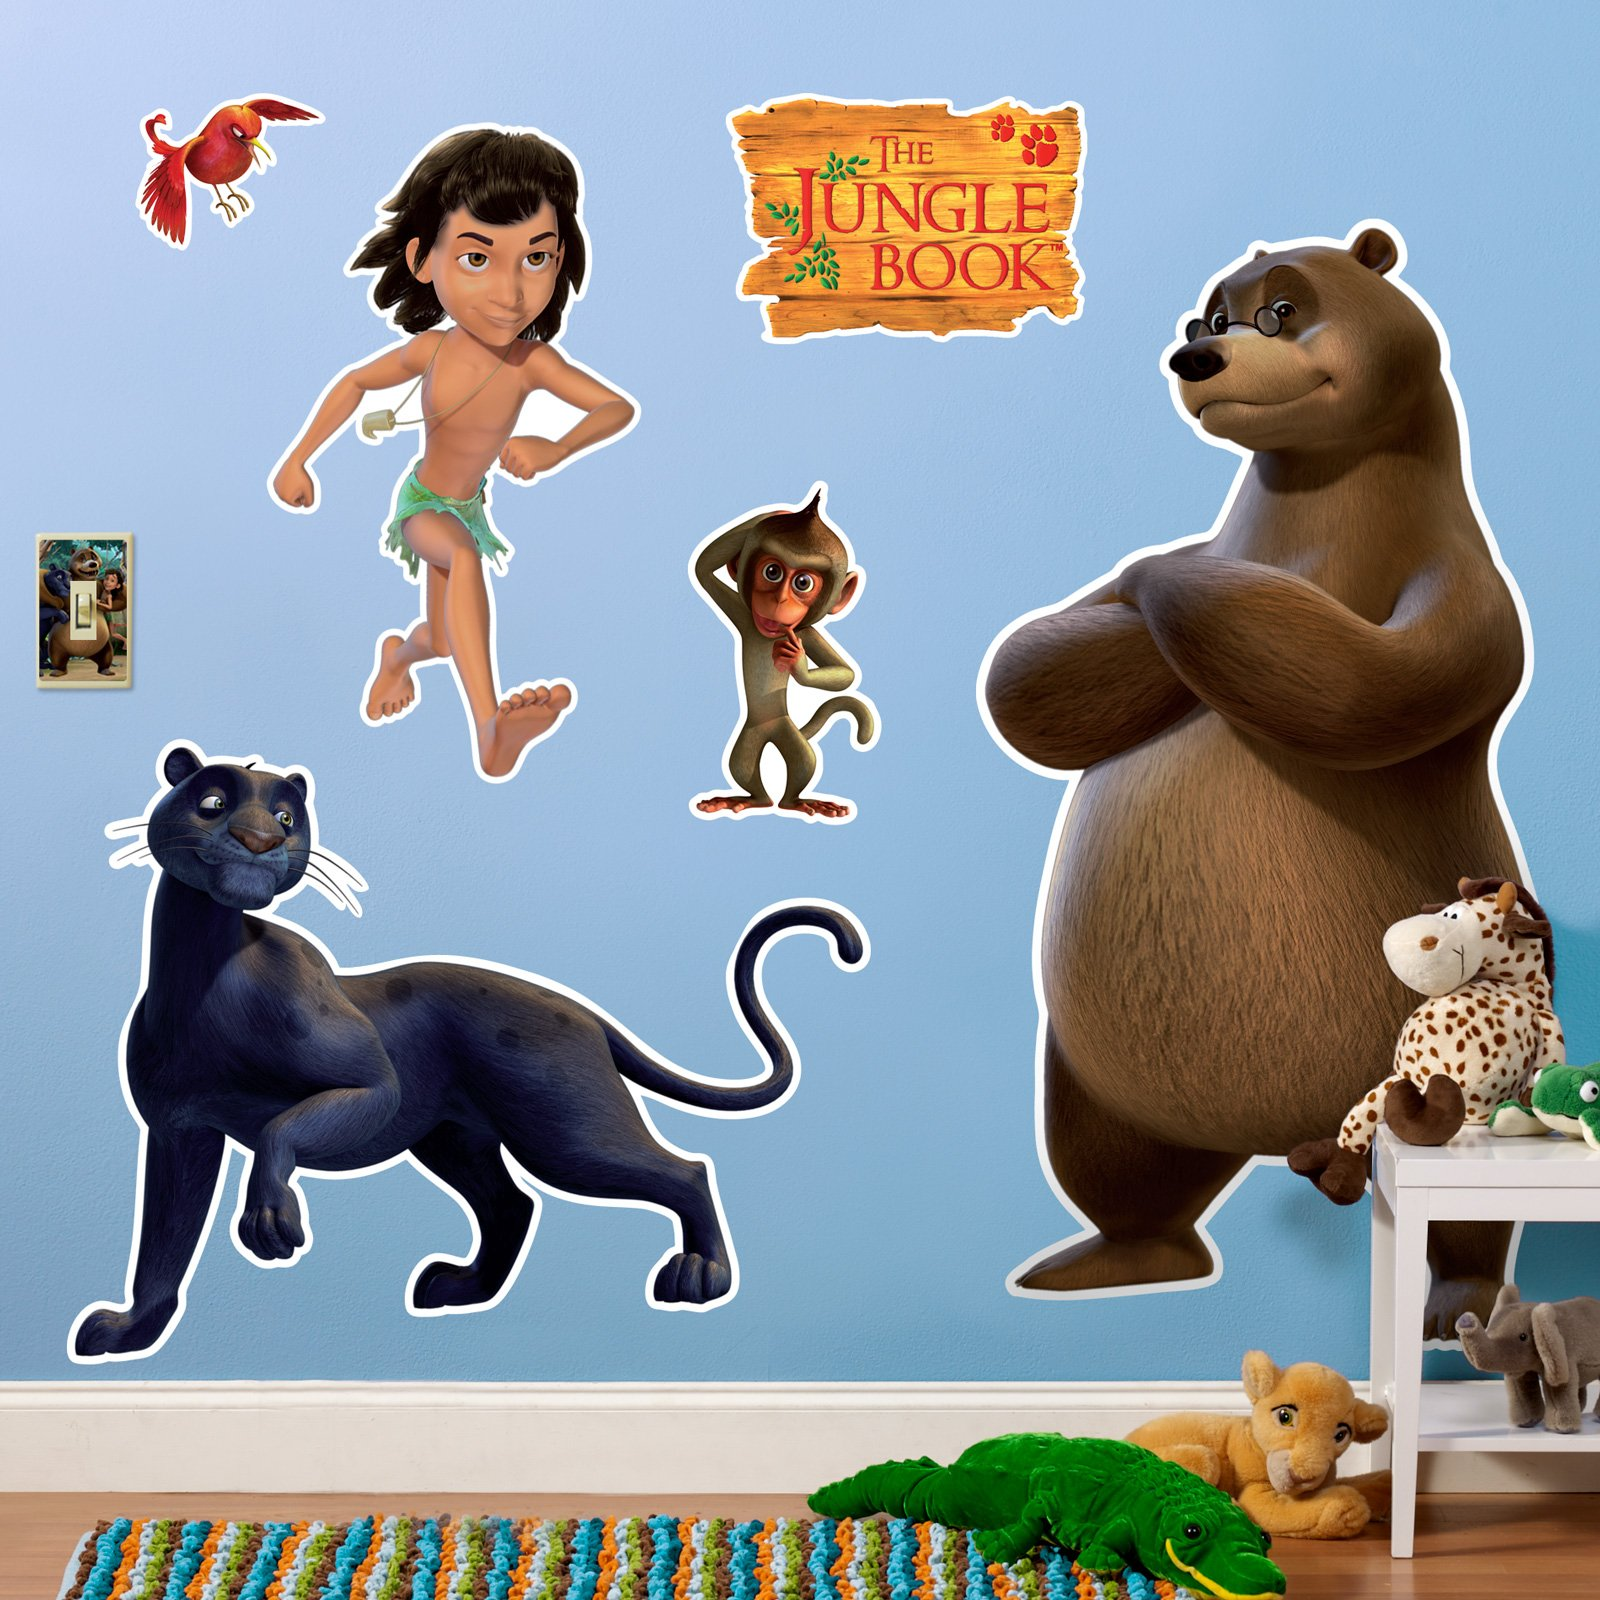 The Jungle Book Giant Wall Decals